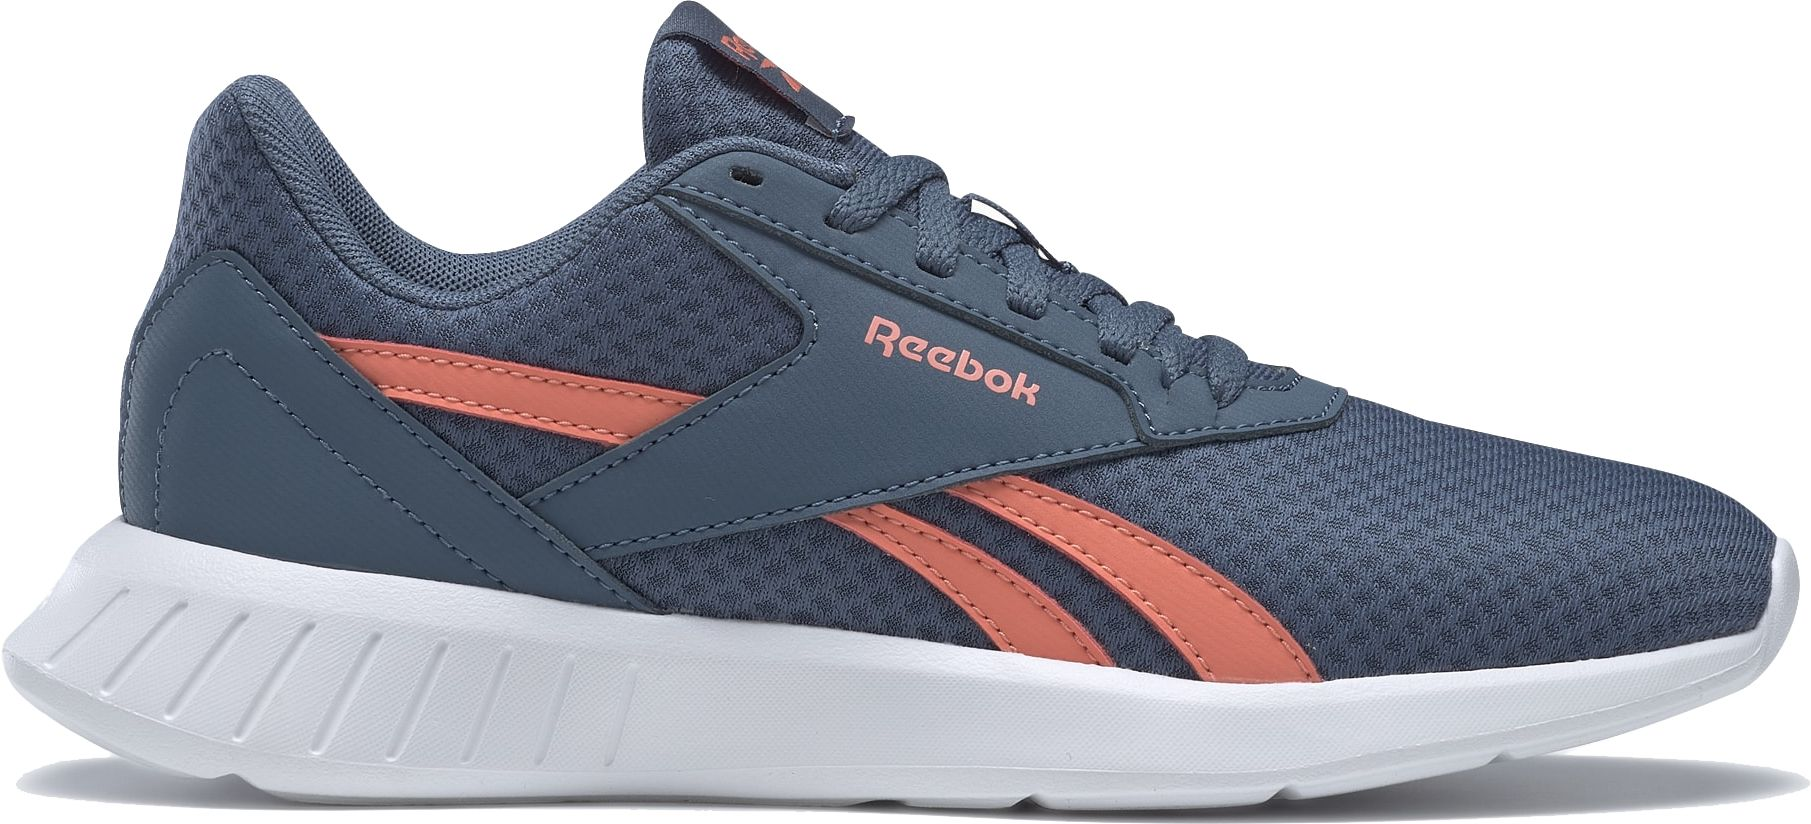 357218101102, Lite 2.0 Shoes, REEBOK, Detail